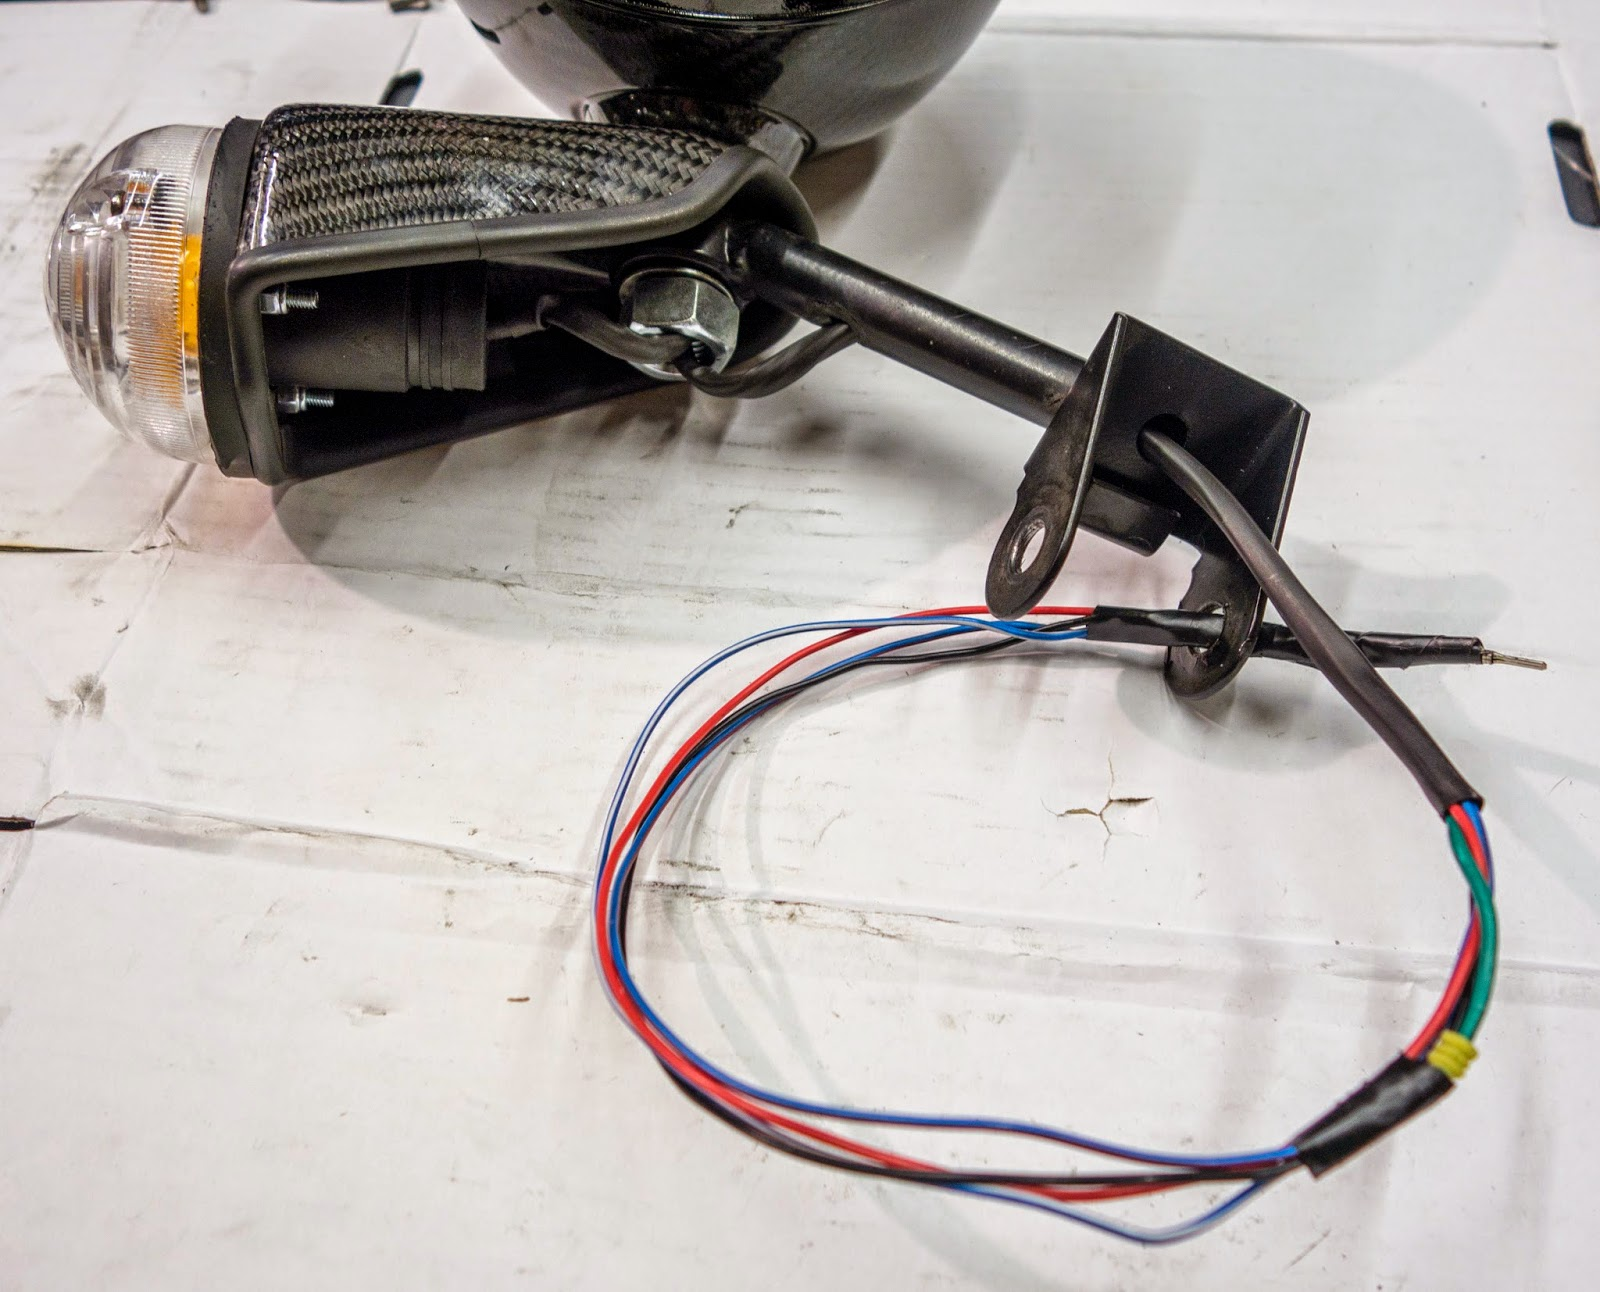 Wiring fed through headlight mounting bracket